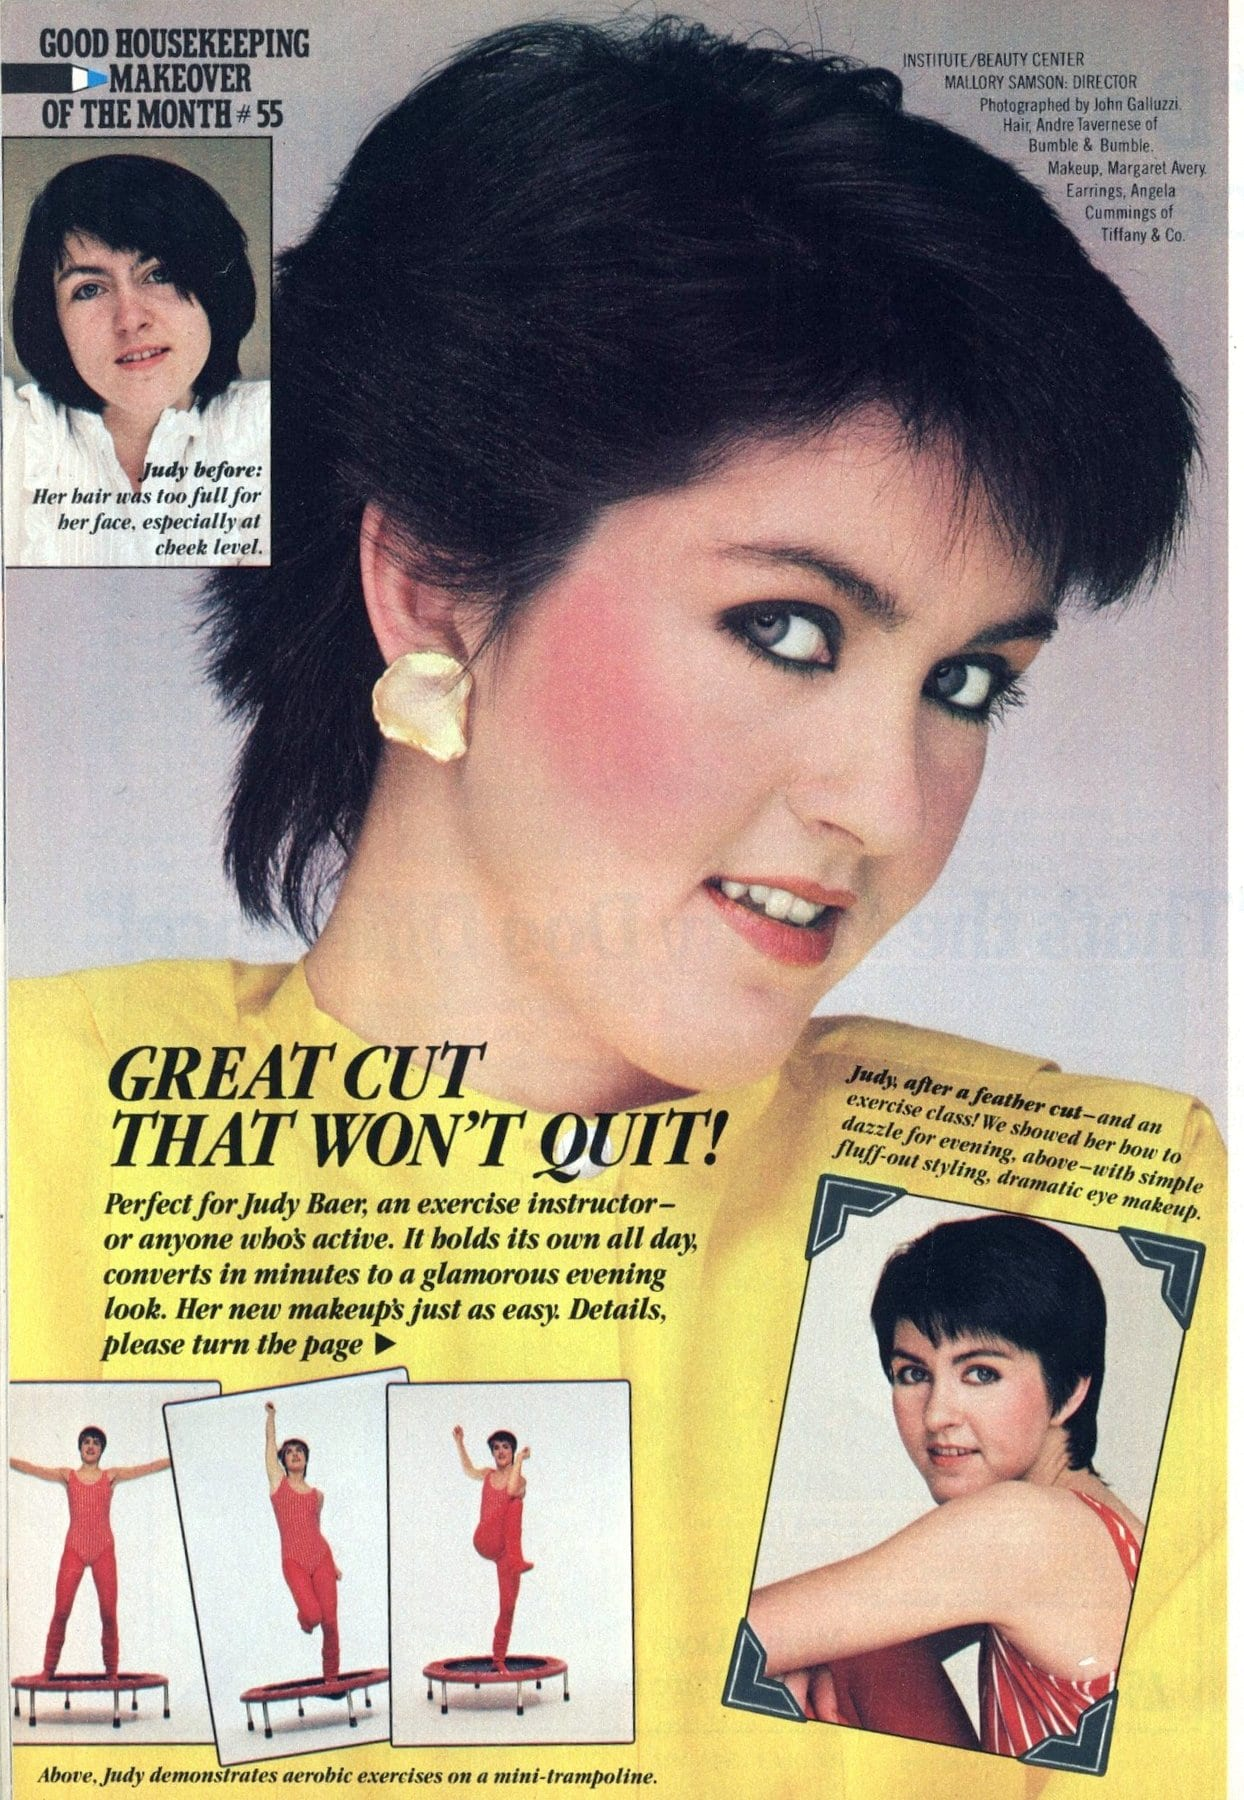 Eighties beauty makeover haircut that won't quit (1982)